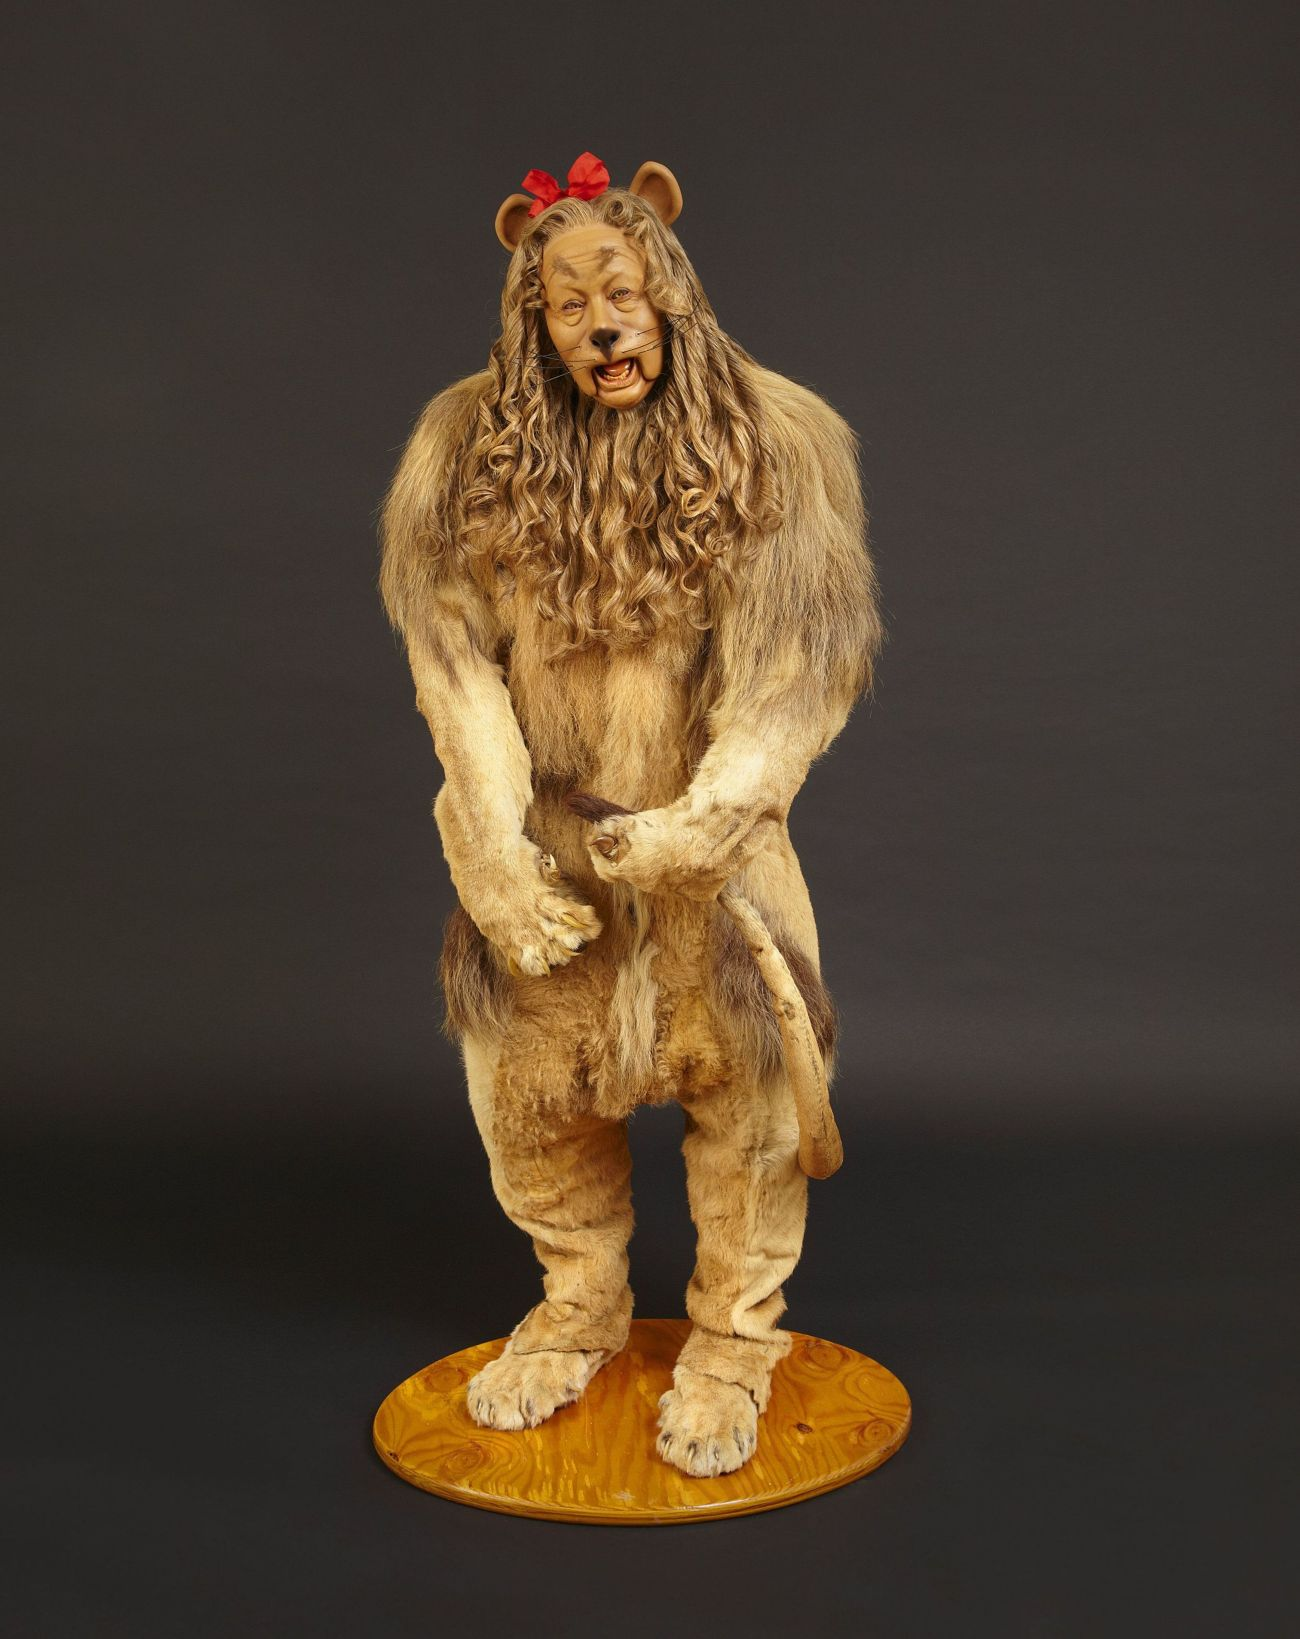 Lot 128 - Bert Lahr's Cowardly Lion costume from the Wizard of Oz - 1